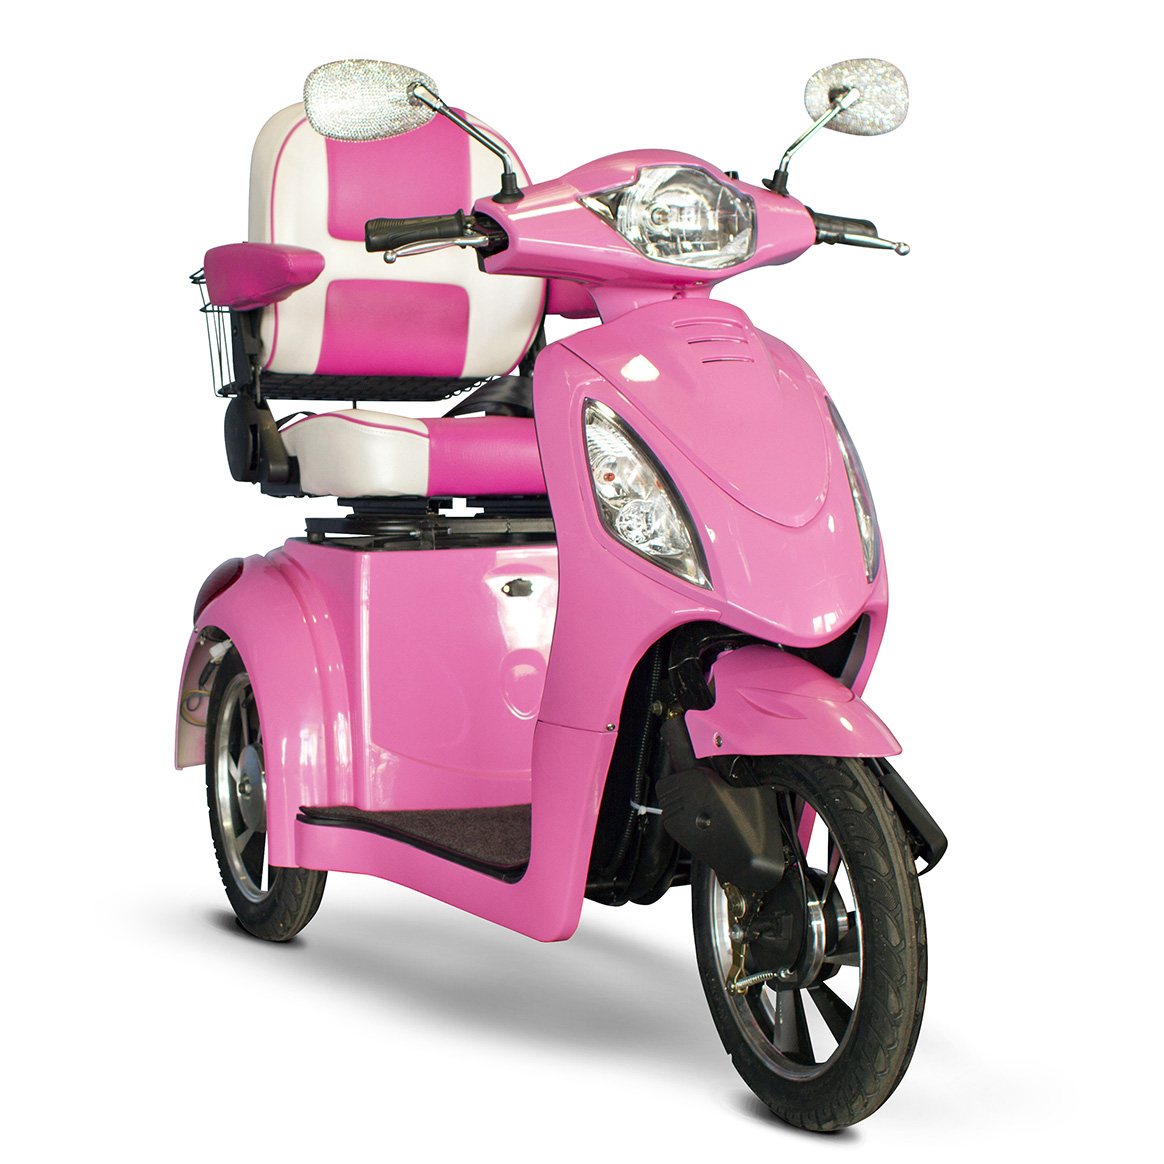 EWheels - EW-80 Pretty In Pink, 3 Wheel Scooter